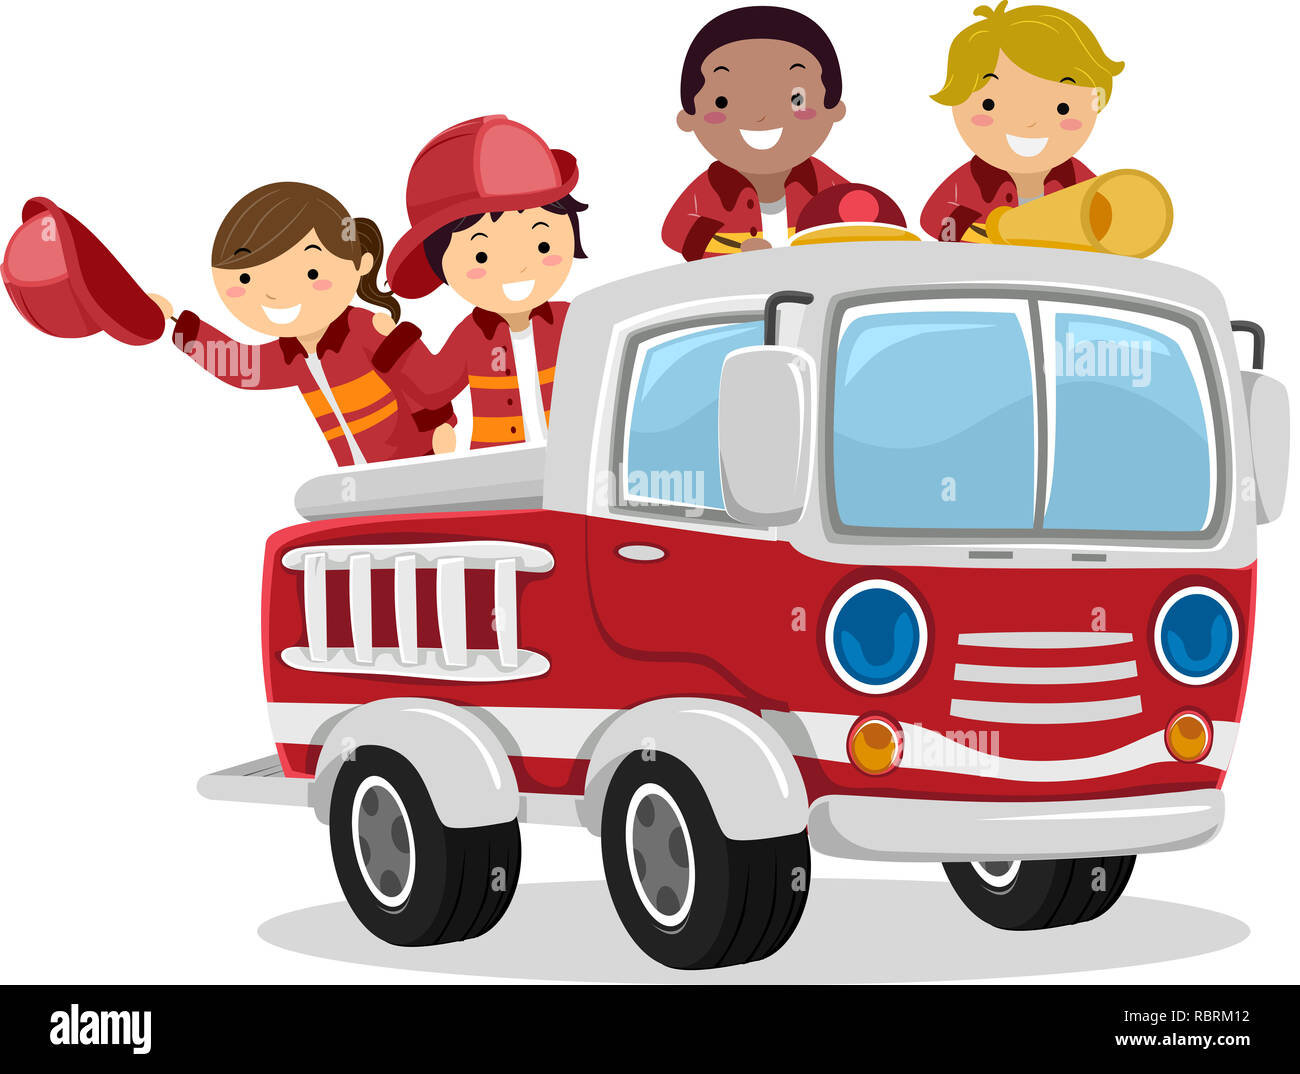 Illustration of Stickman Kids as Fireman Riding a Fire Truck Stock